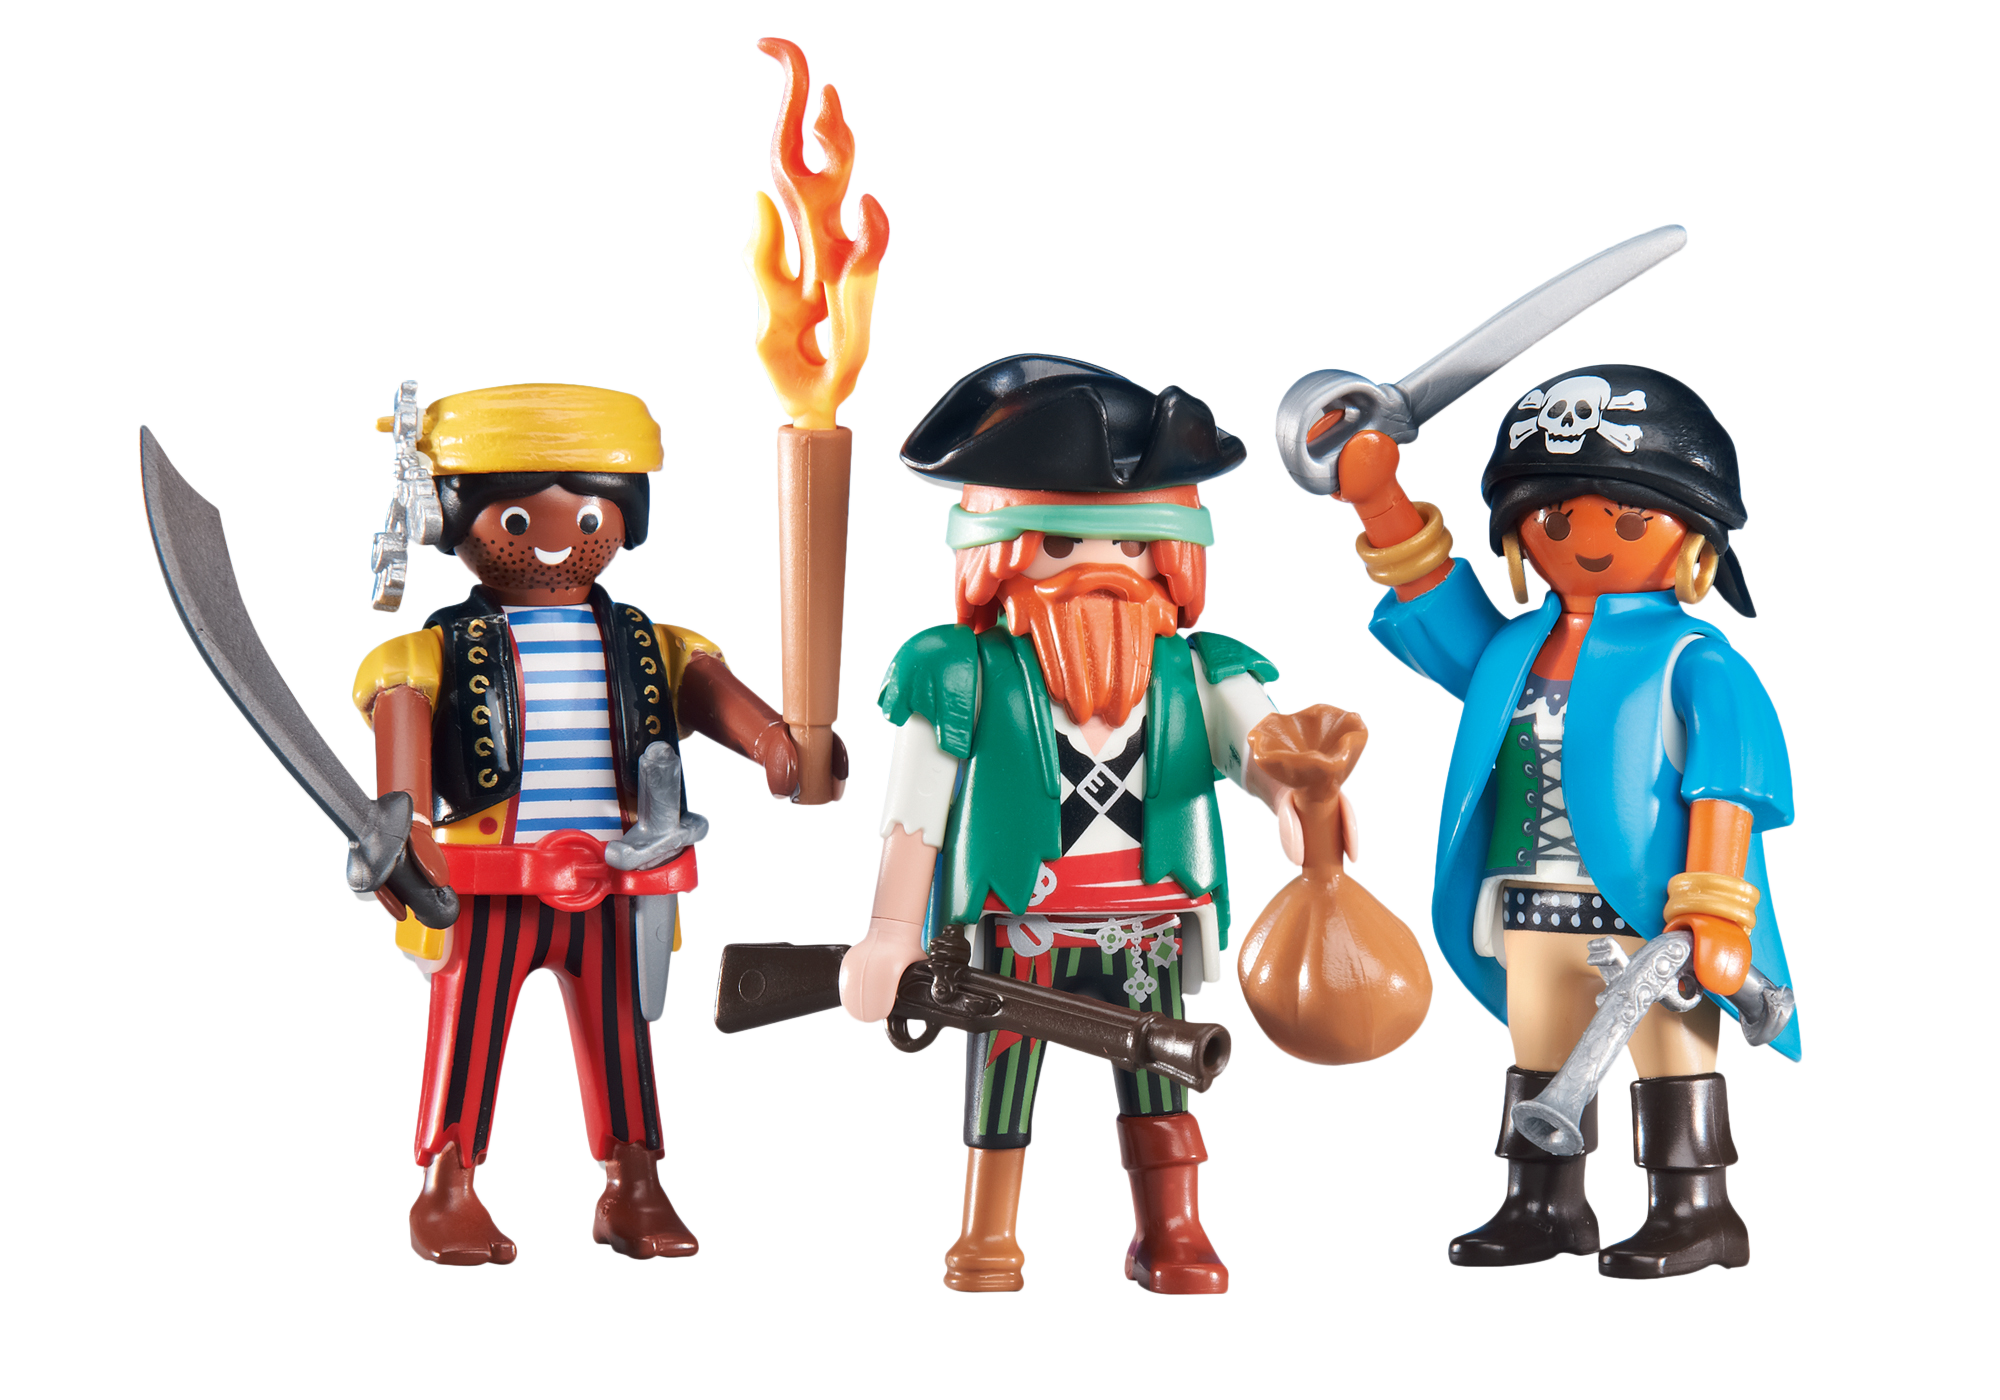 http://media.playmobil.com/i/playmobil/6434_product_detail